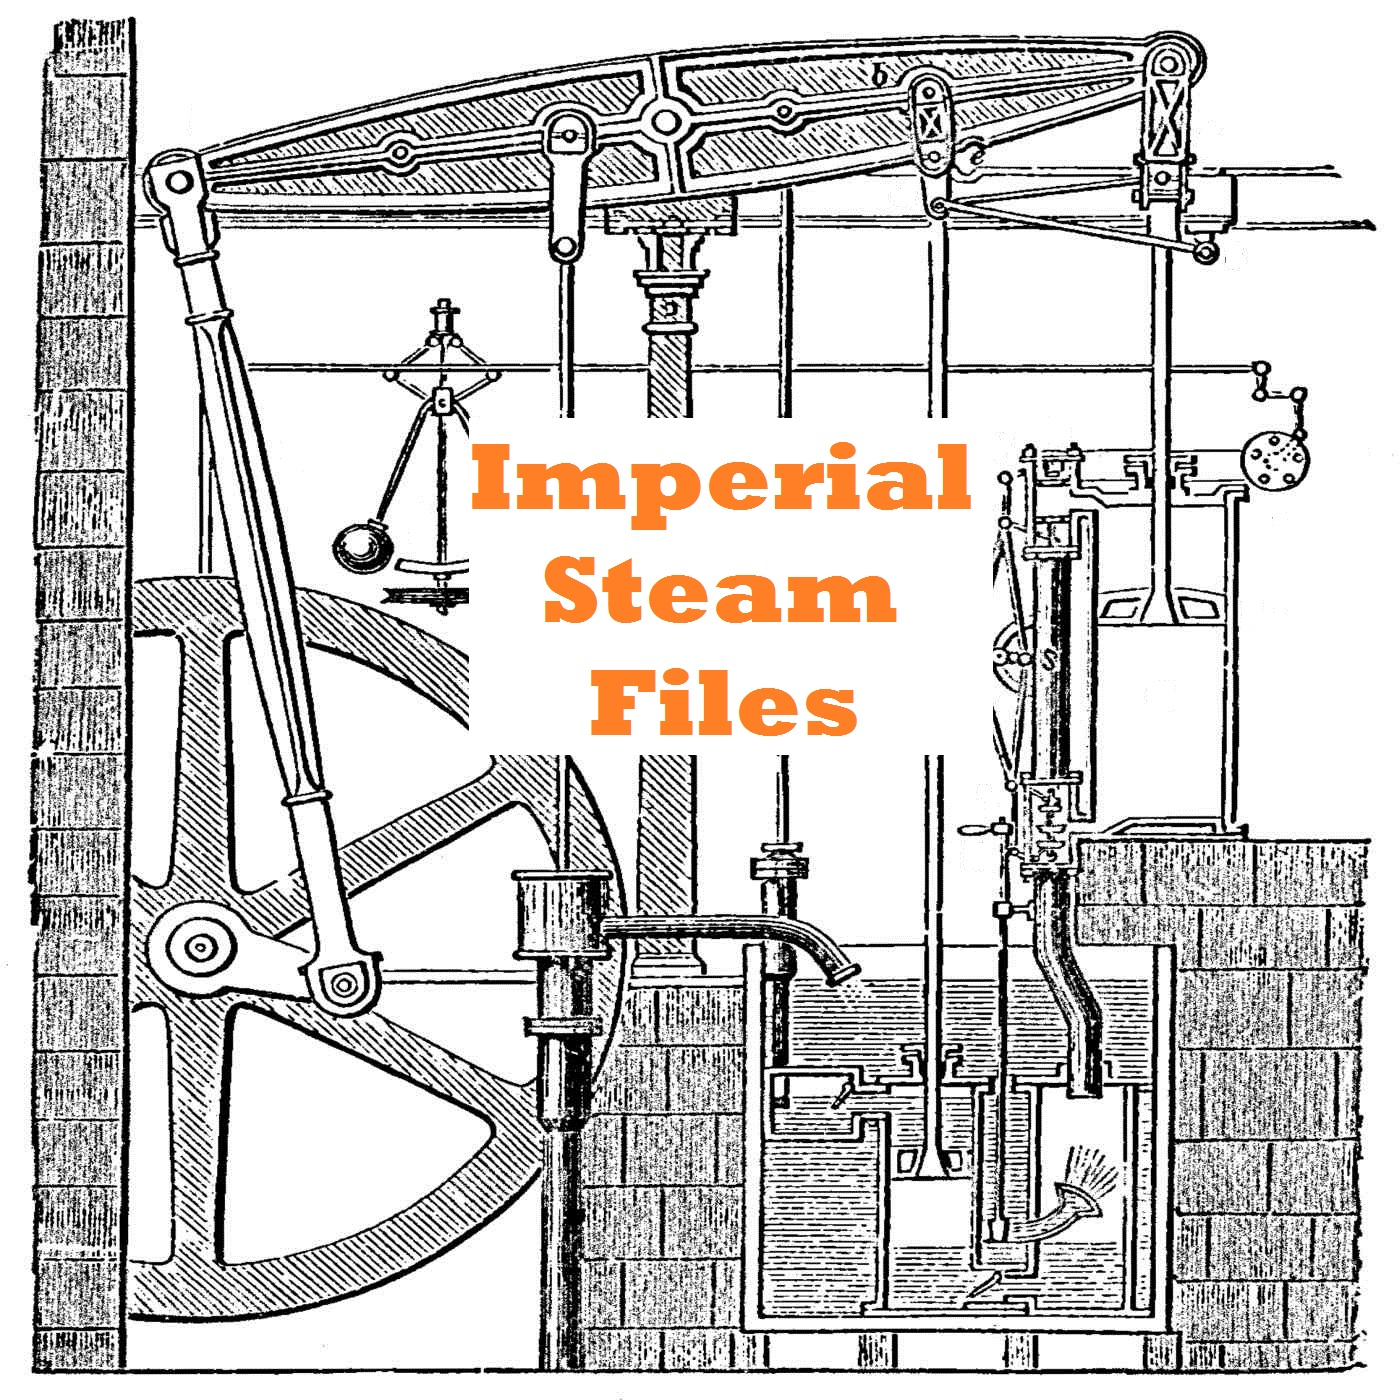 Imperial Blog Files - Imperial Steam Files